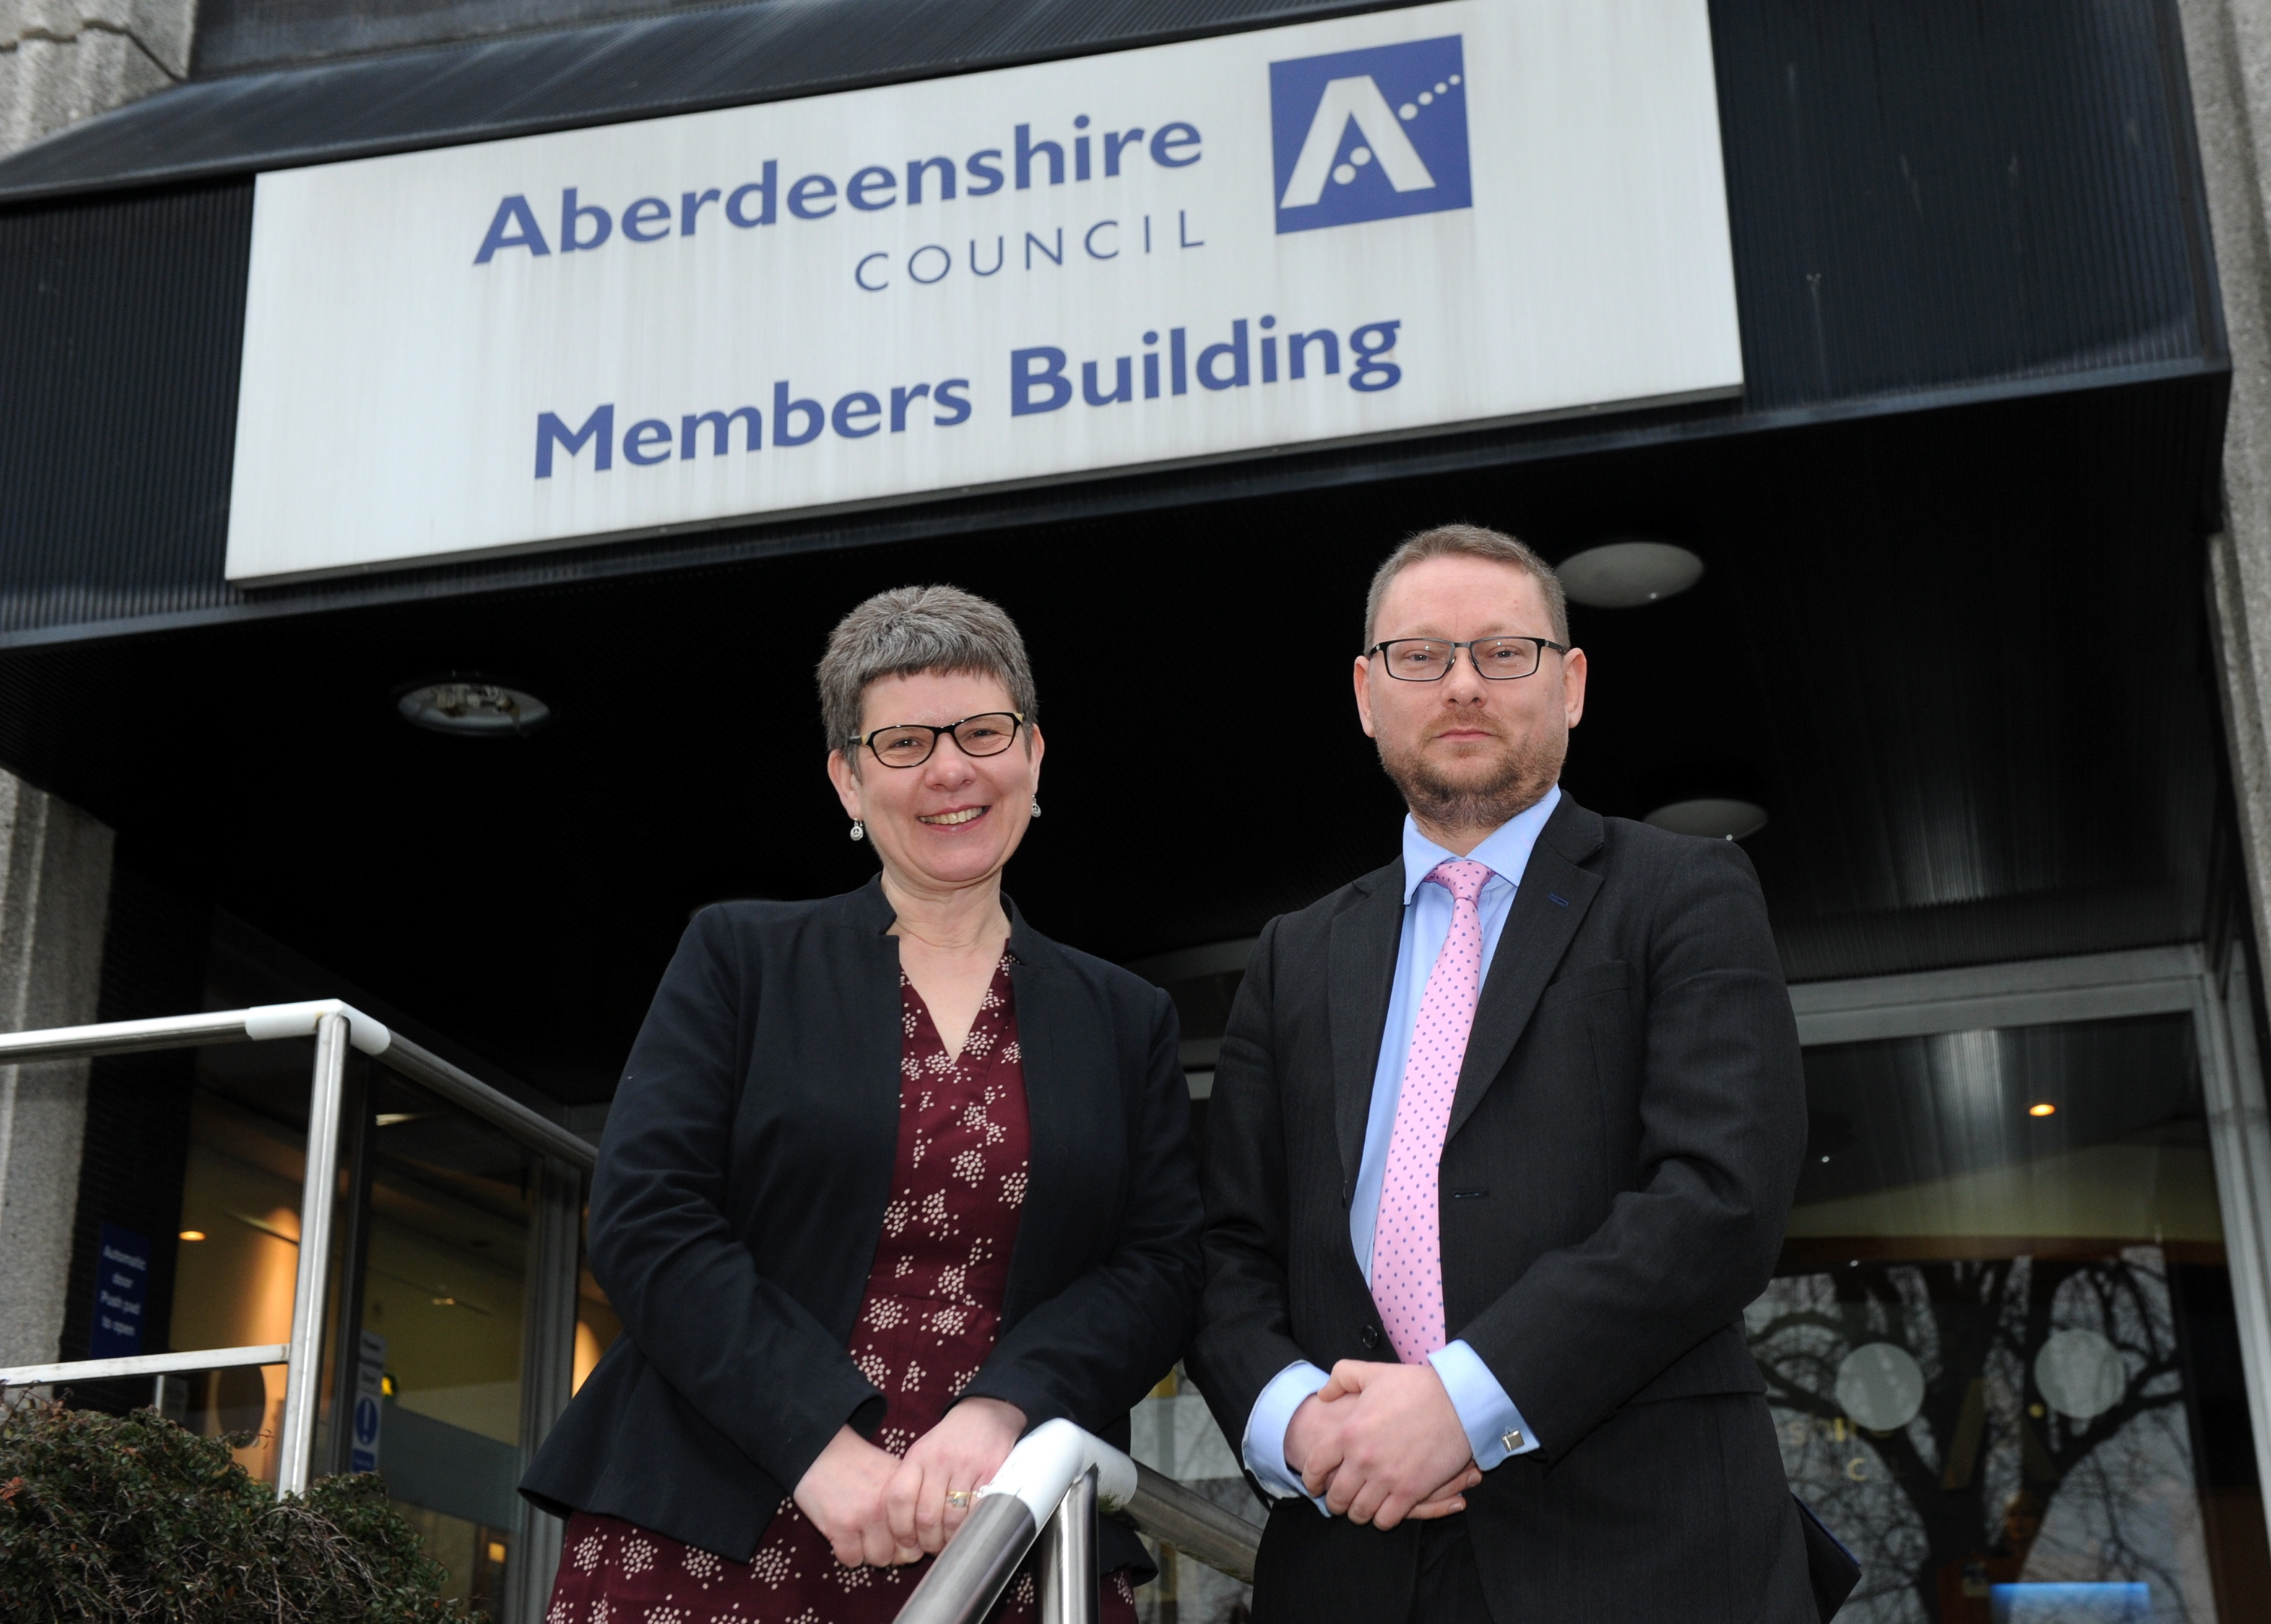 Aberdeenshire Council co-leaders Alison Evison and Richard Thomson.